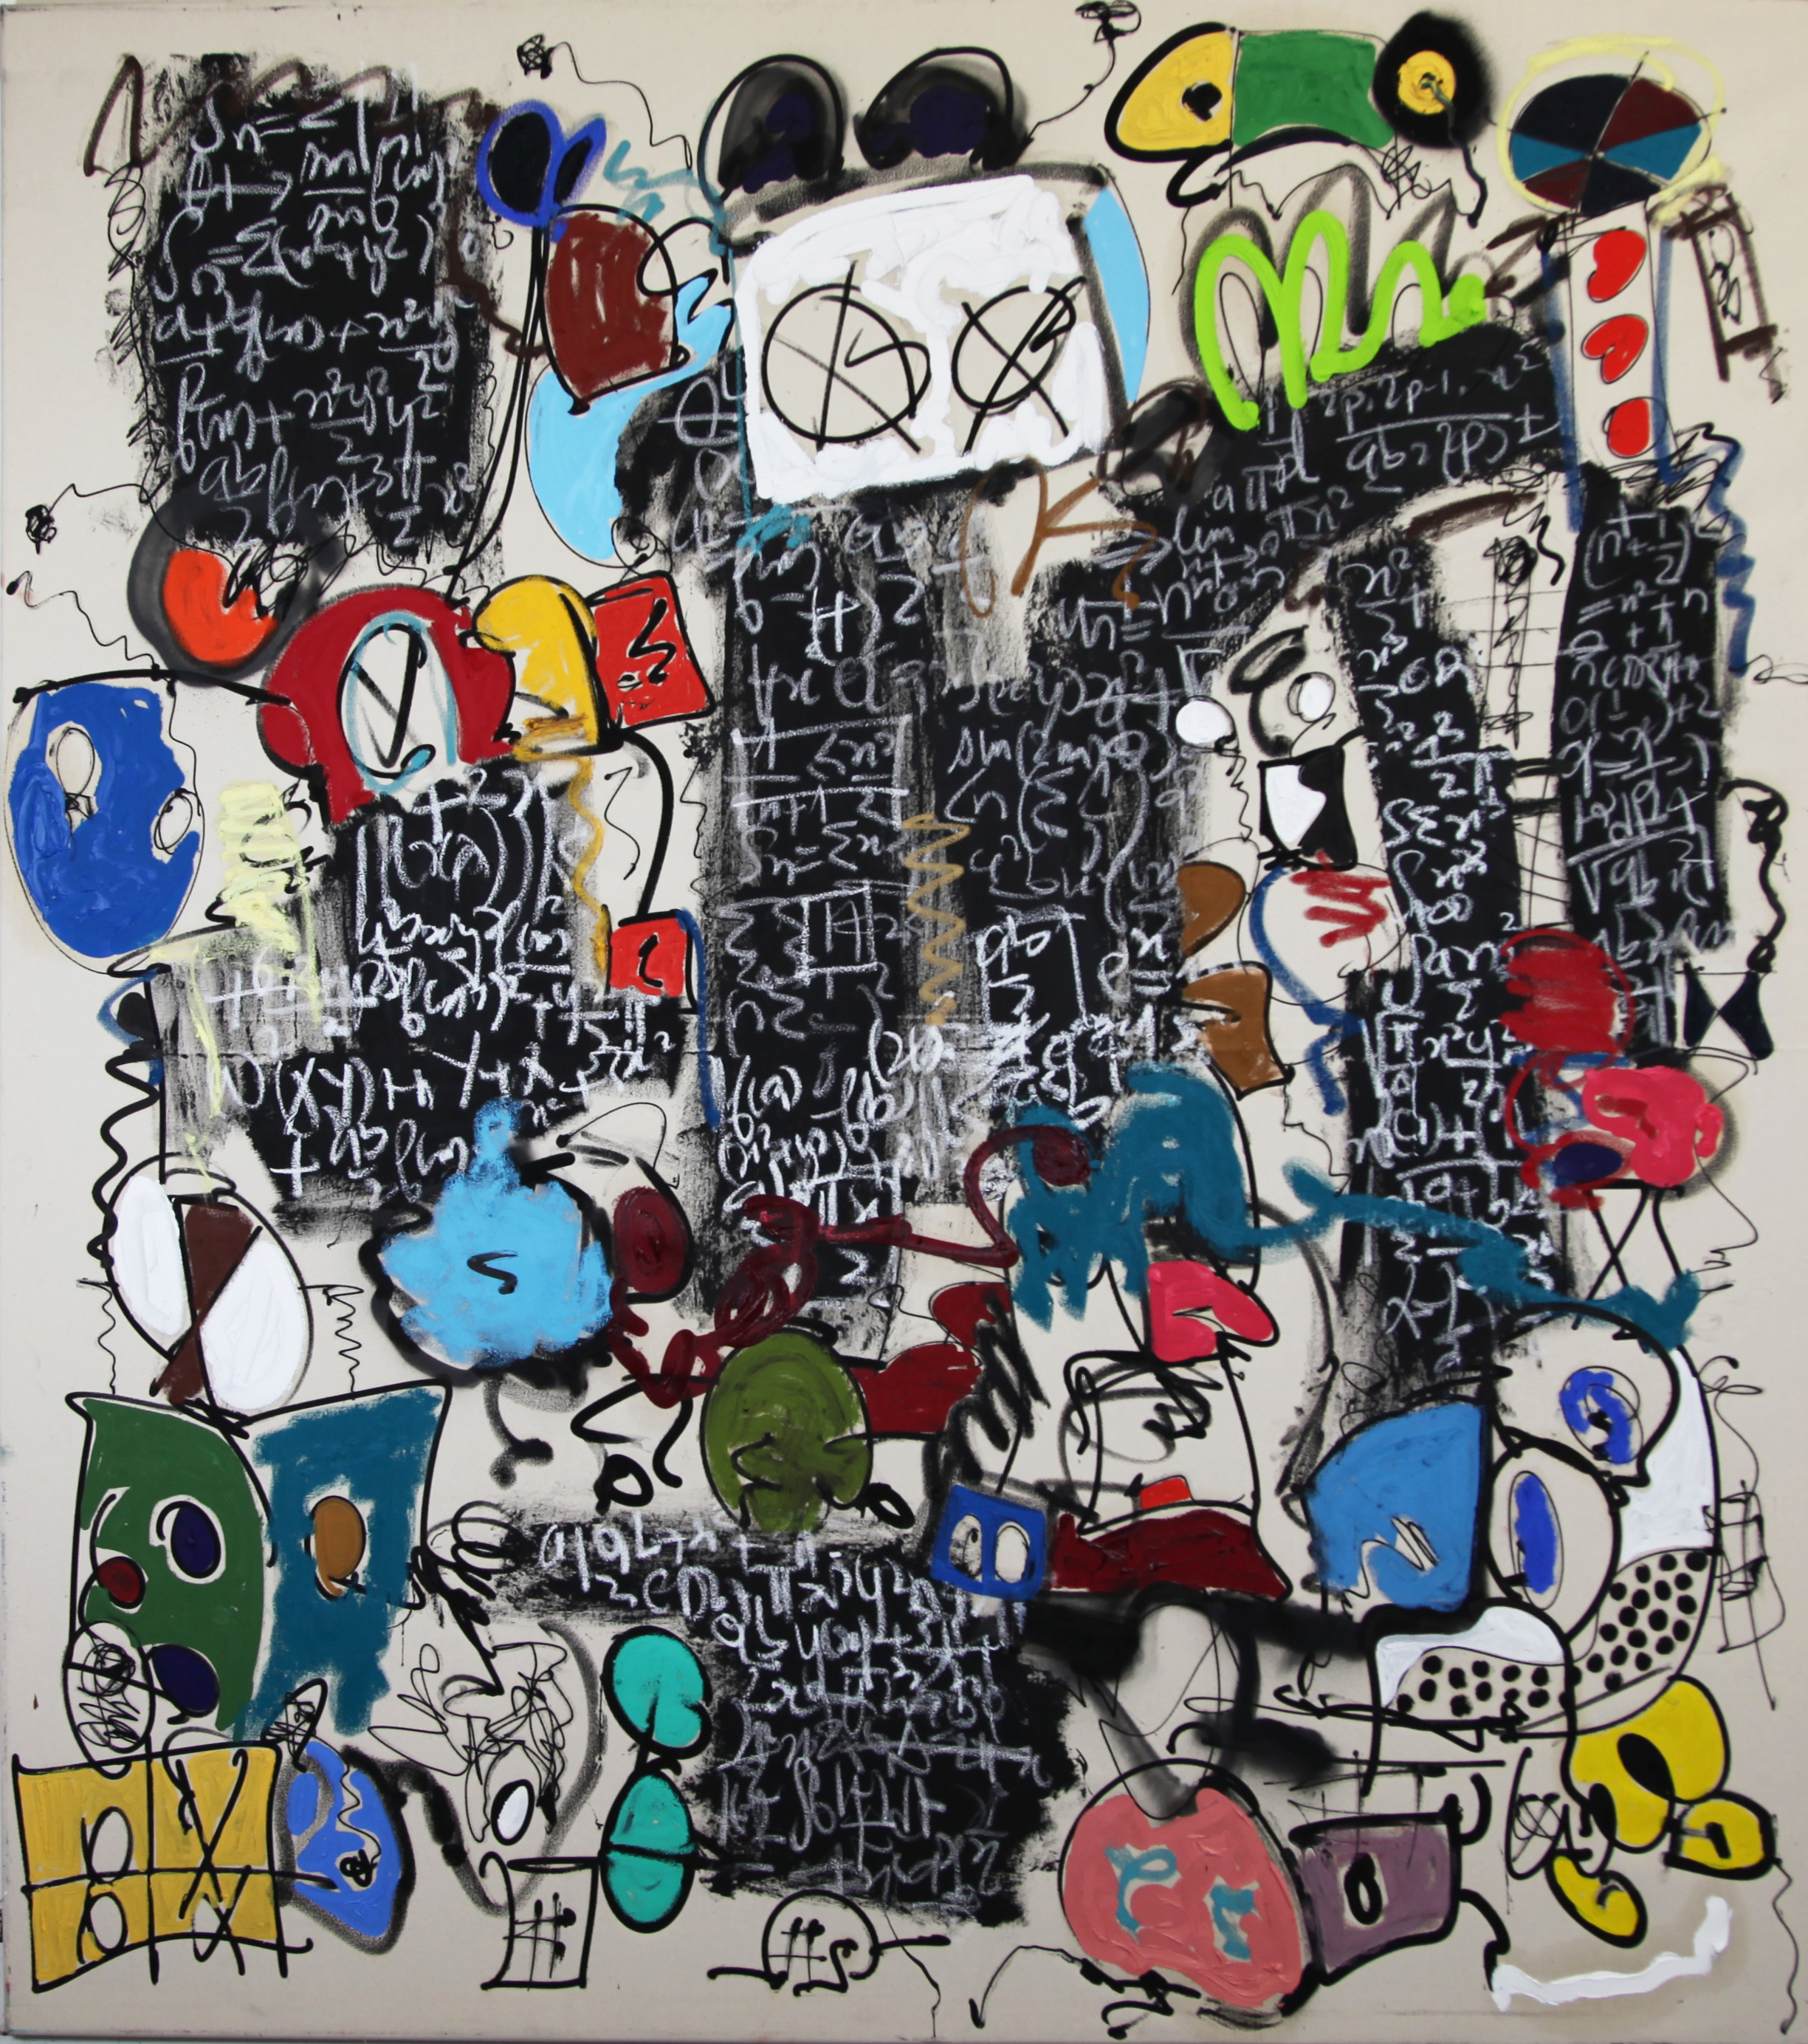 Eve Leibe Gallery_Taher Jaoui_410 We used to be Gorillas _Oil, Acrylic, Silkscreen ink , Enamel, Charcoal on Canvas_2019_165 x 150 cm.jpg